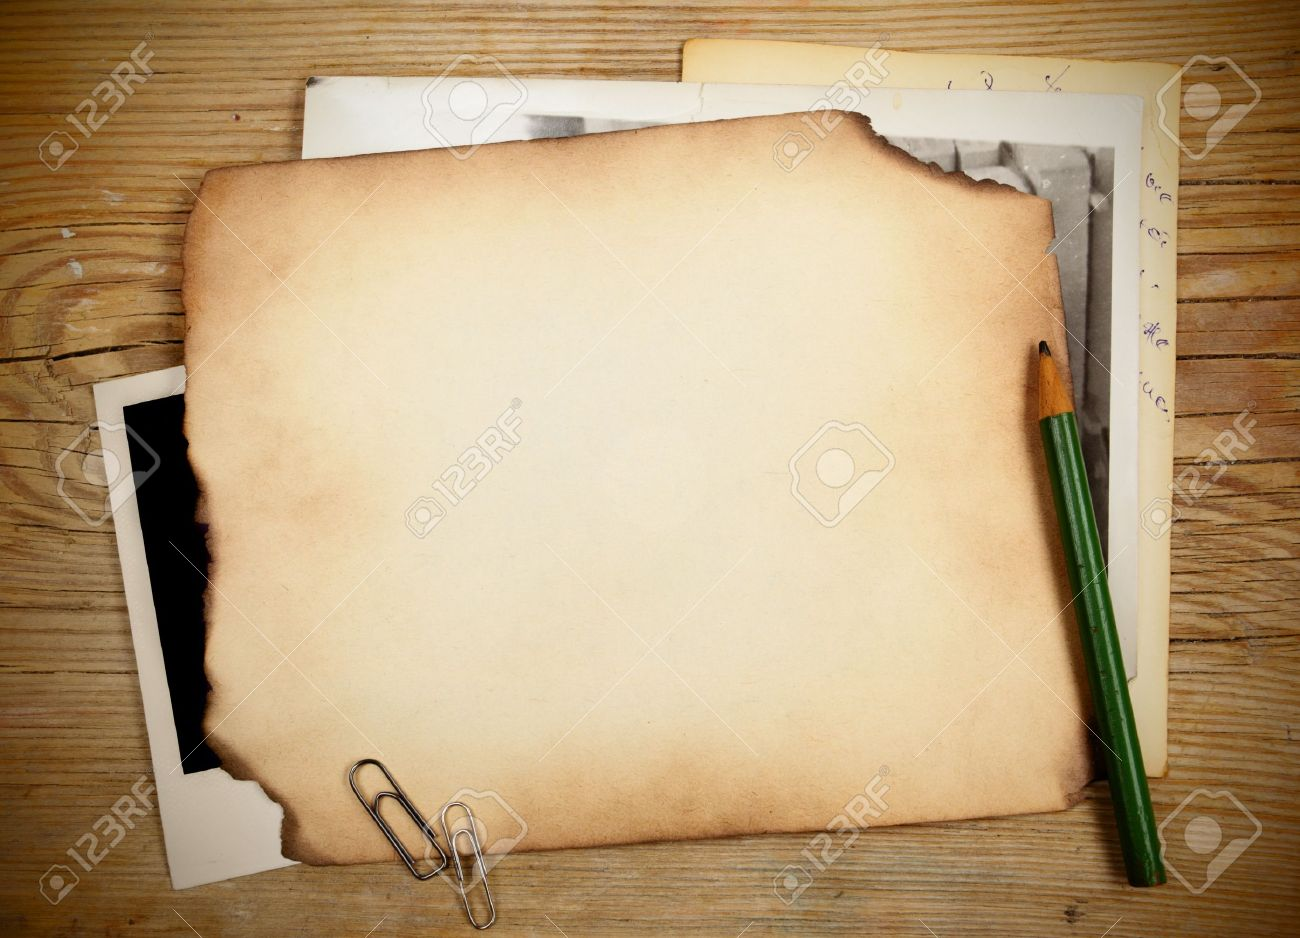 Stack of old papers and photos on a wooden table Stock Photo - 9920108